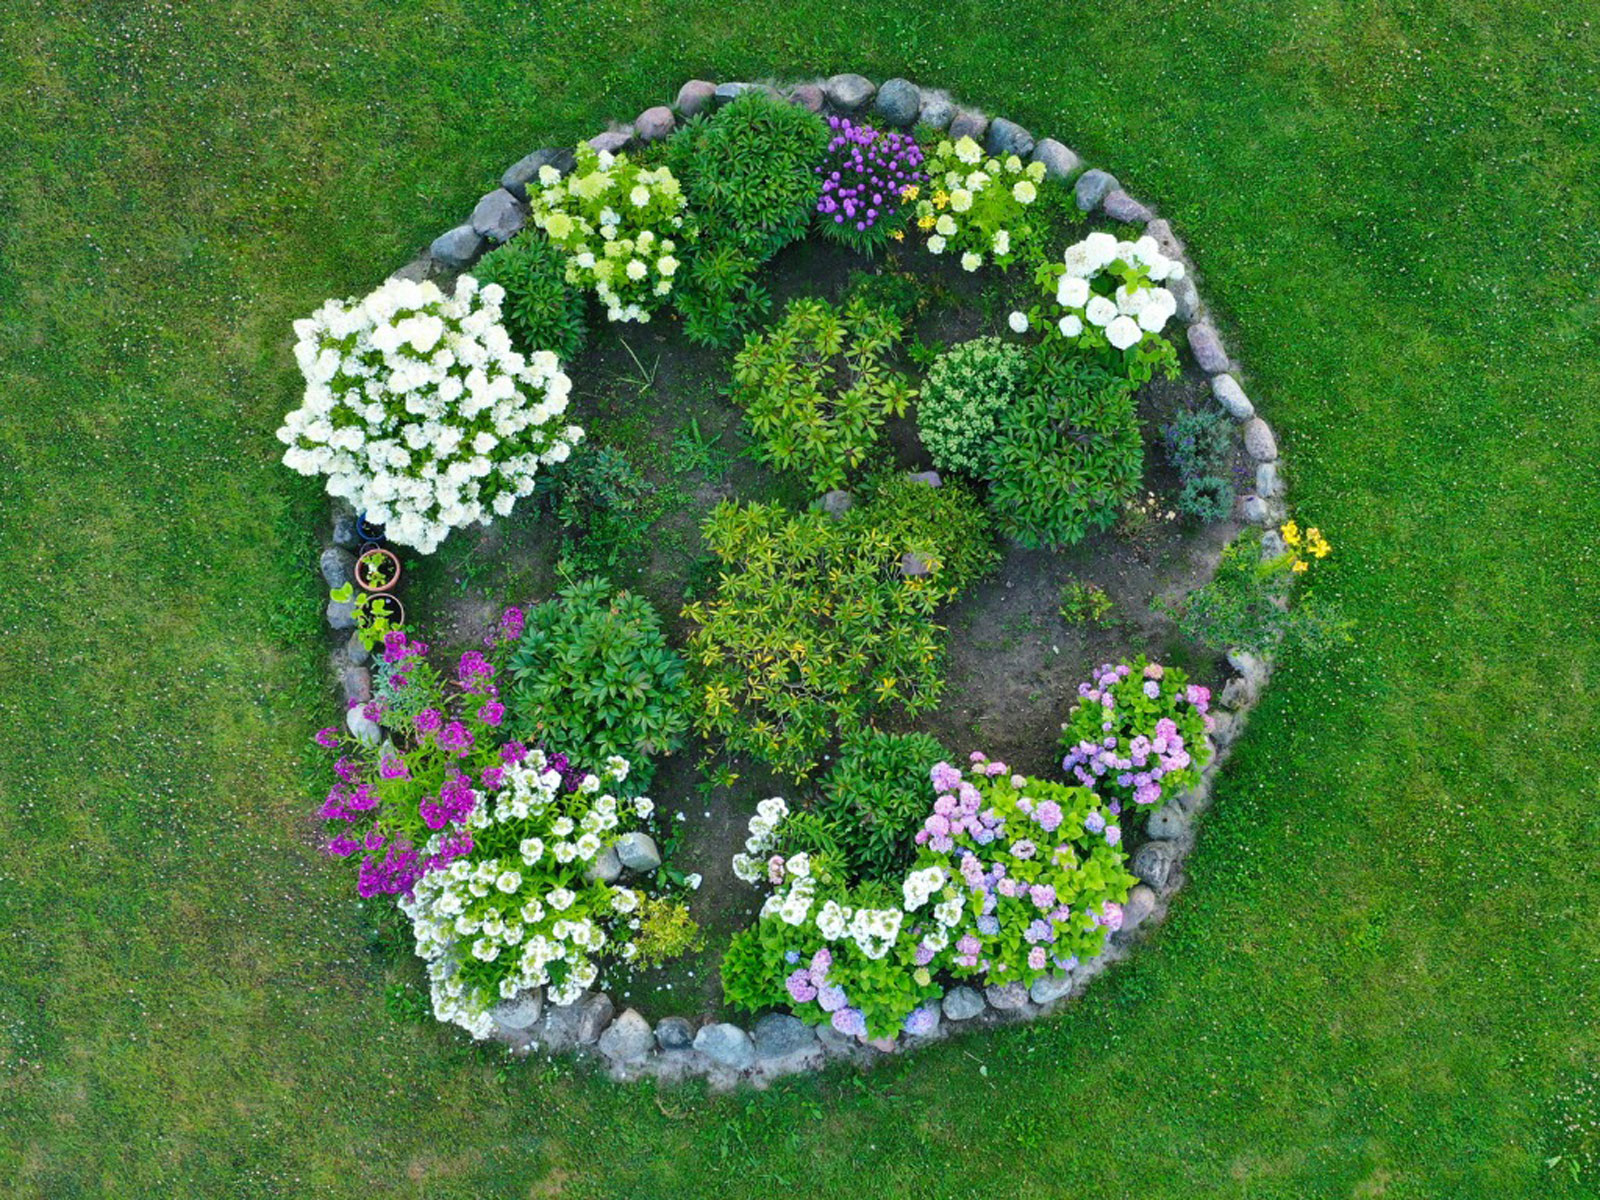 Round Flower Bed Ideas – Planting A Circular Flower Bed